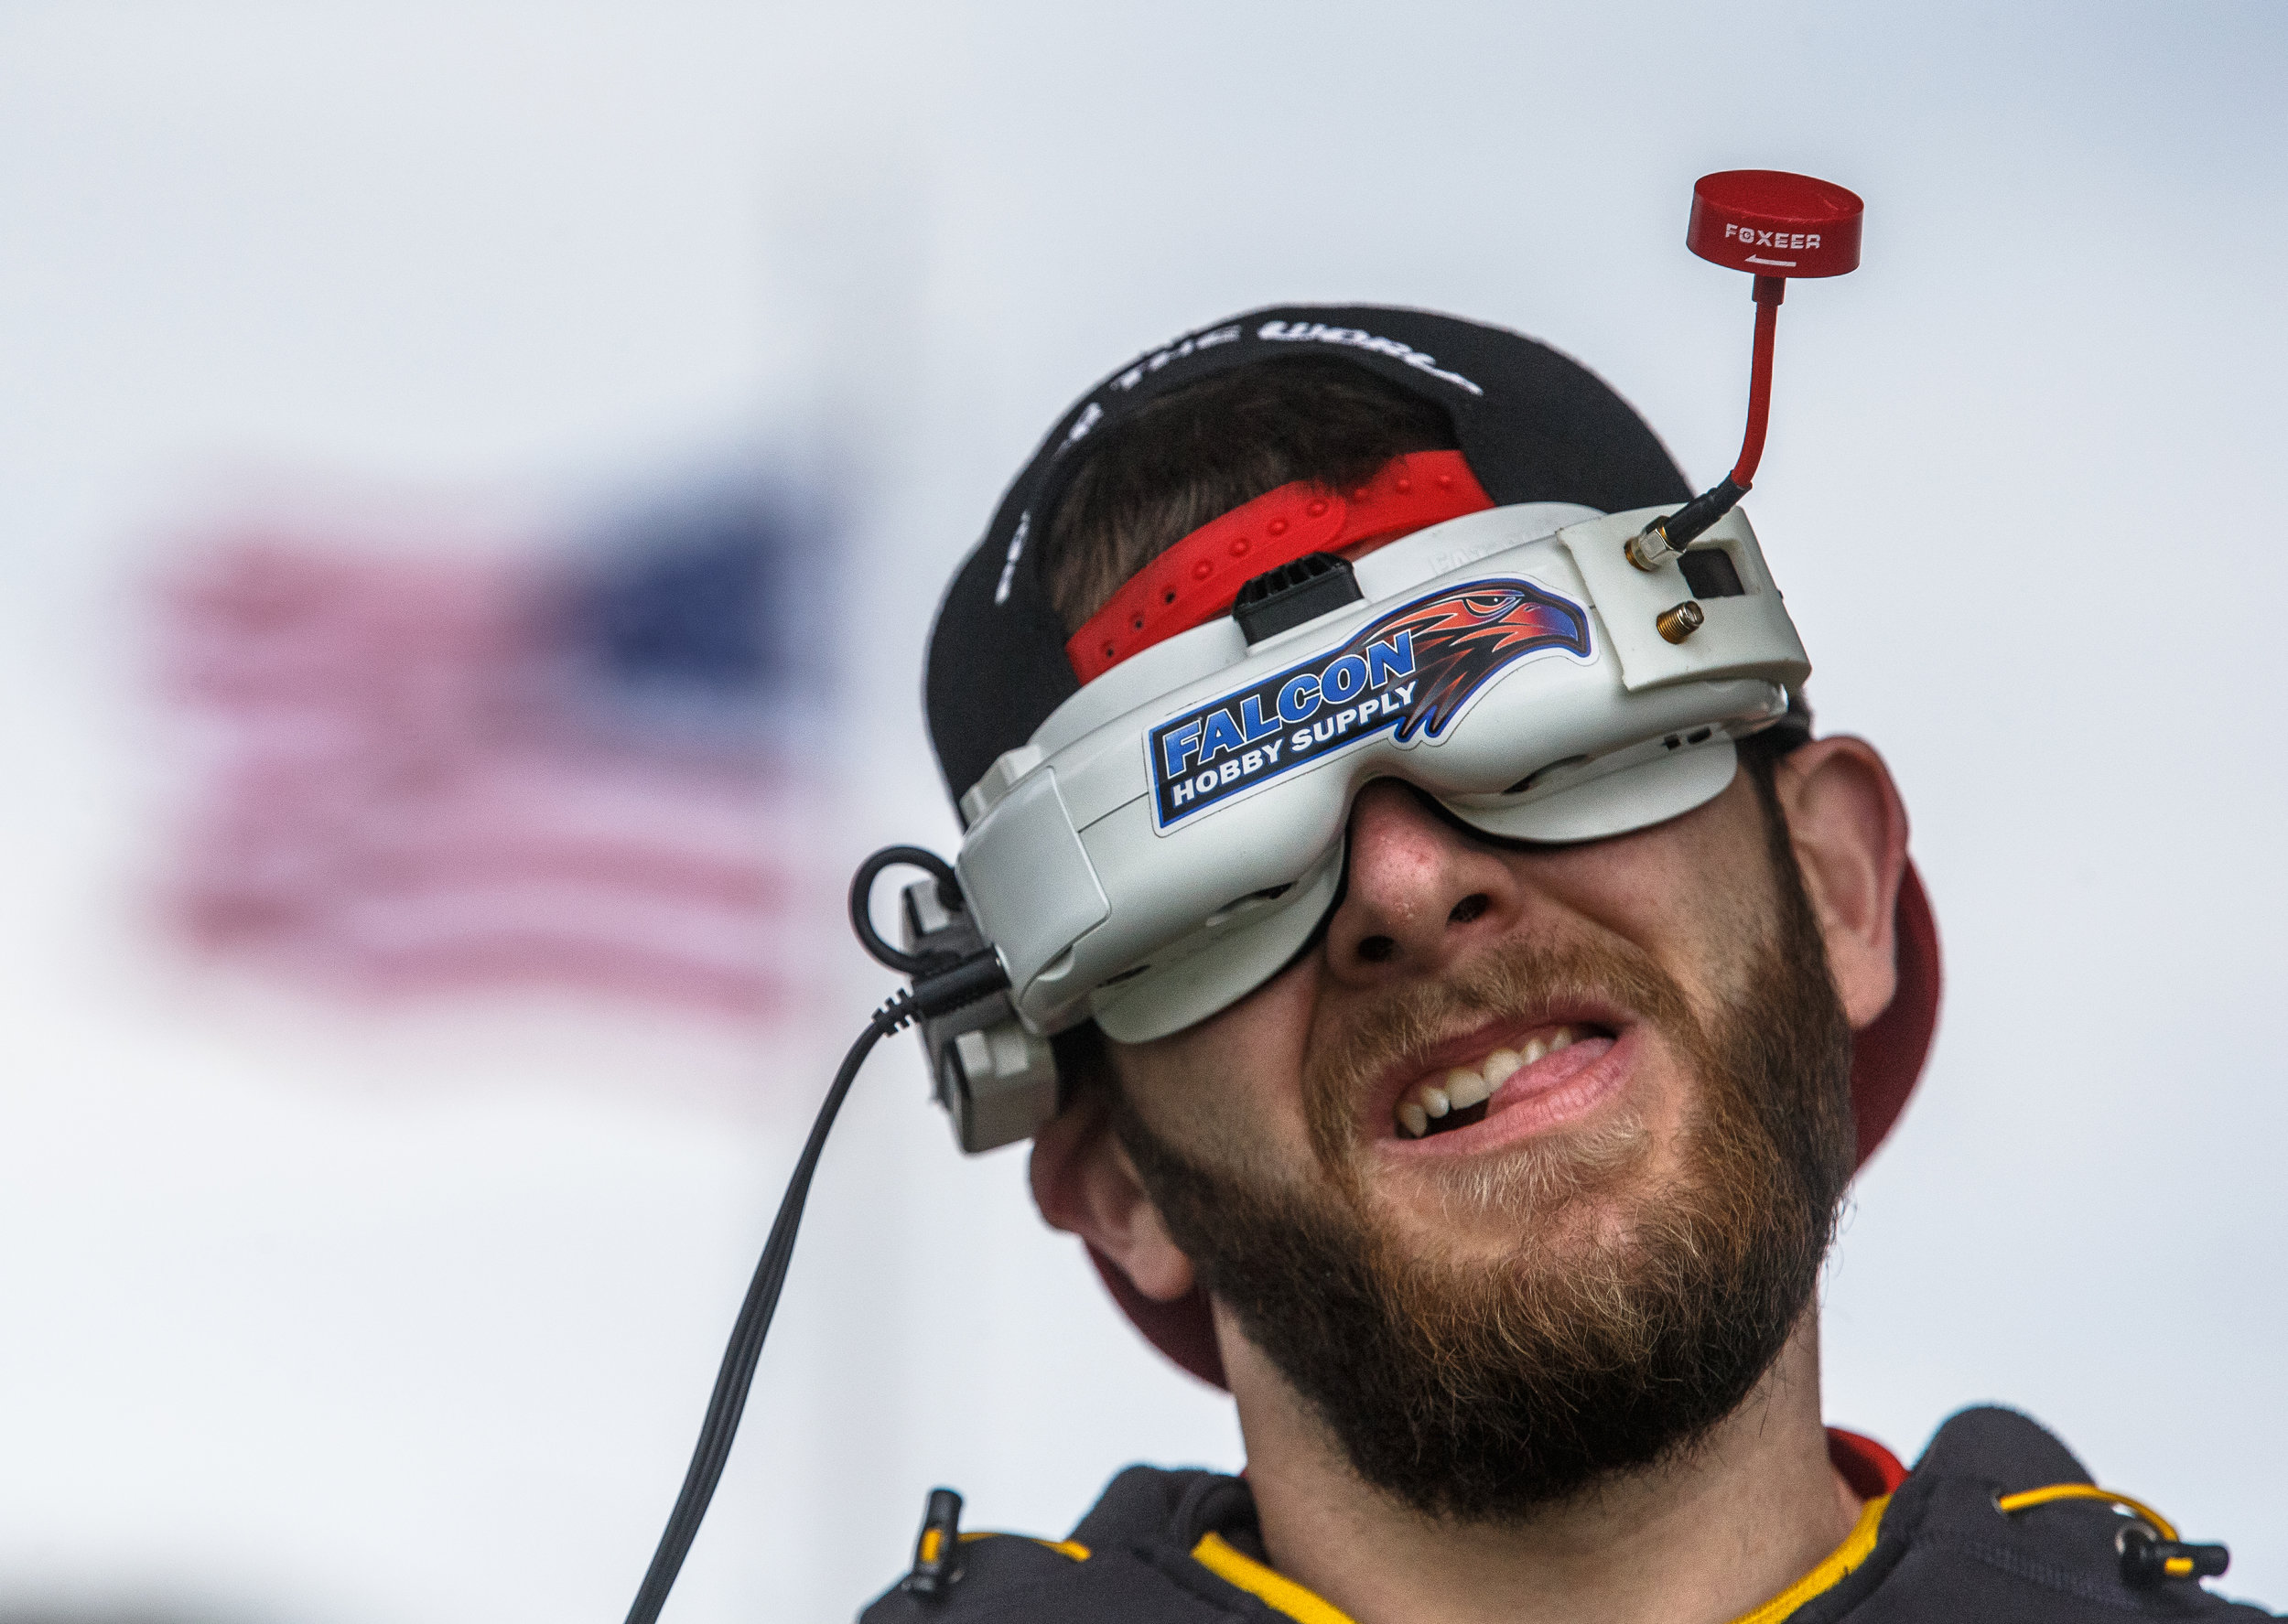 """Zach Carlson, center, shop manager of Falcon Hobby Supply and FPV pilot """"FalconX,"""" watches the live feed of his drone through FPV (First Person View) goggles as he races in the pro division on the outdoor course at Falcon Hobby Supply, Sunday, April 22, 2018, in Springfield, Ill. The drones transmit a video signal that gives the pilots the view of what their drone sees as they race around an outdoor timed obstacle course with required gates they must pass through. [Justin L. Fowler/The State Journal-Register]"""